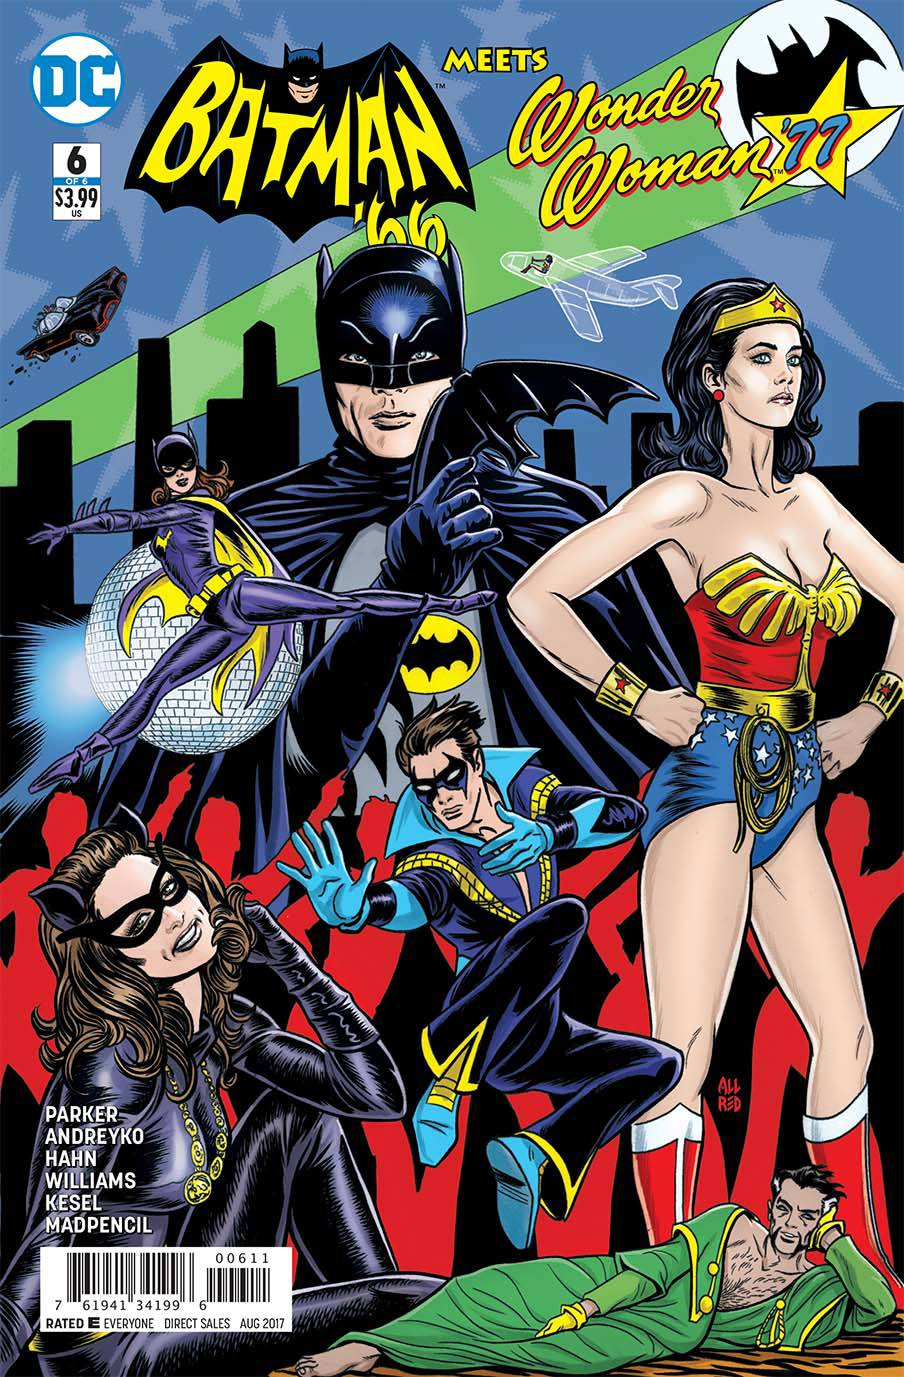 BATMAN 66 MEETS WONDER WOMAN 77 6 of 6.jpg